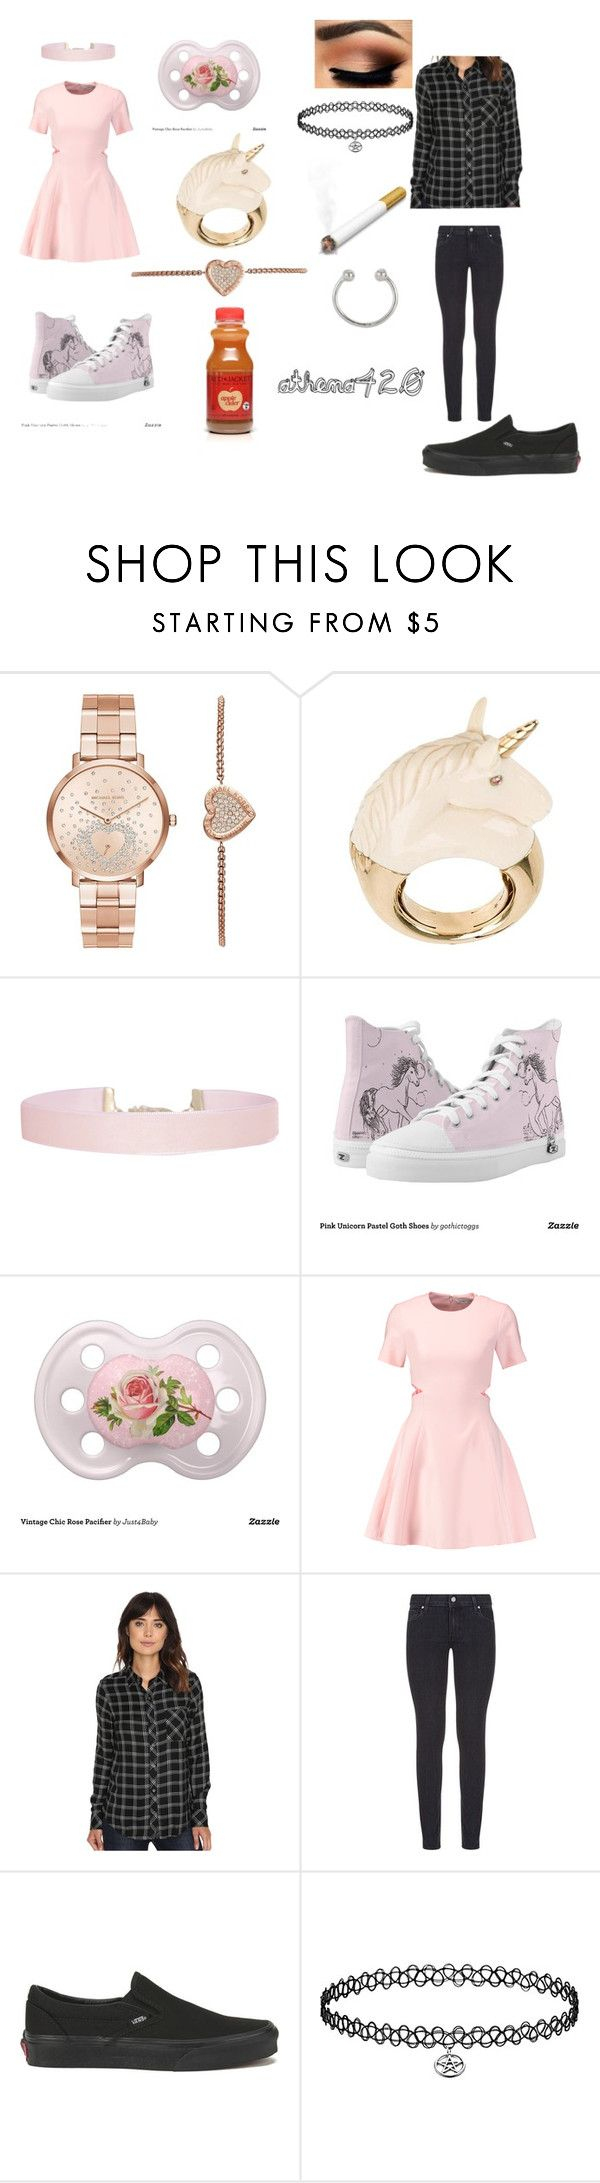 """""""oh babe oh my gosh"""" by athena420 ❤ liked on Polyvore featuring Michael Kors, BIBI VAN DER VELDEN, Humble Chic, Elizabeth and James, Rip Curl, Paige Denim, Vans, Coffee Shop and Miss Selfridge"""